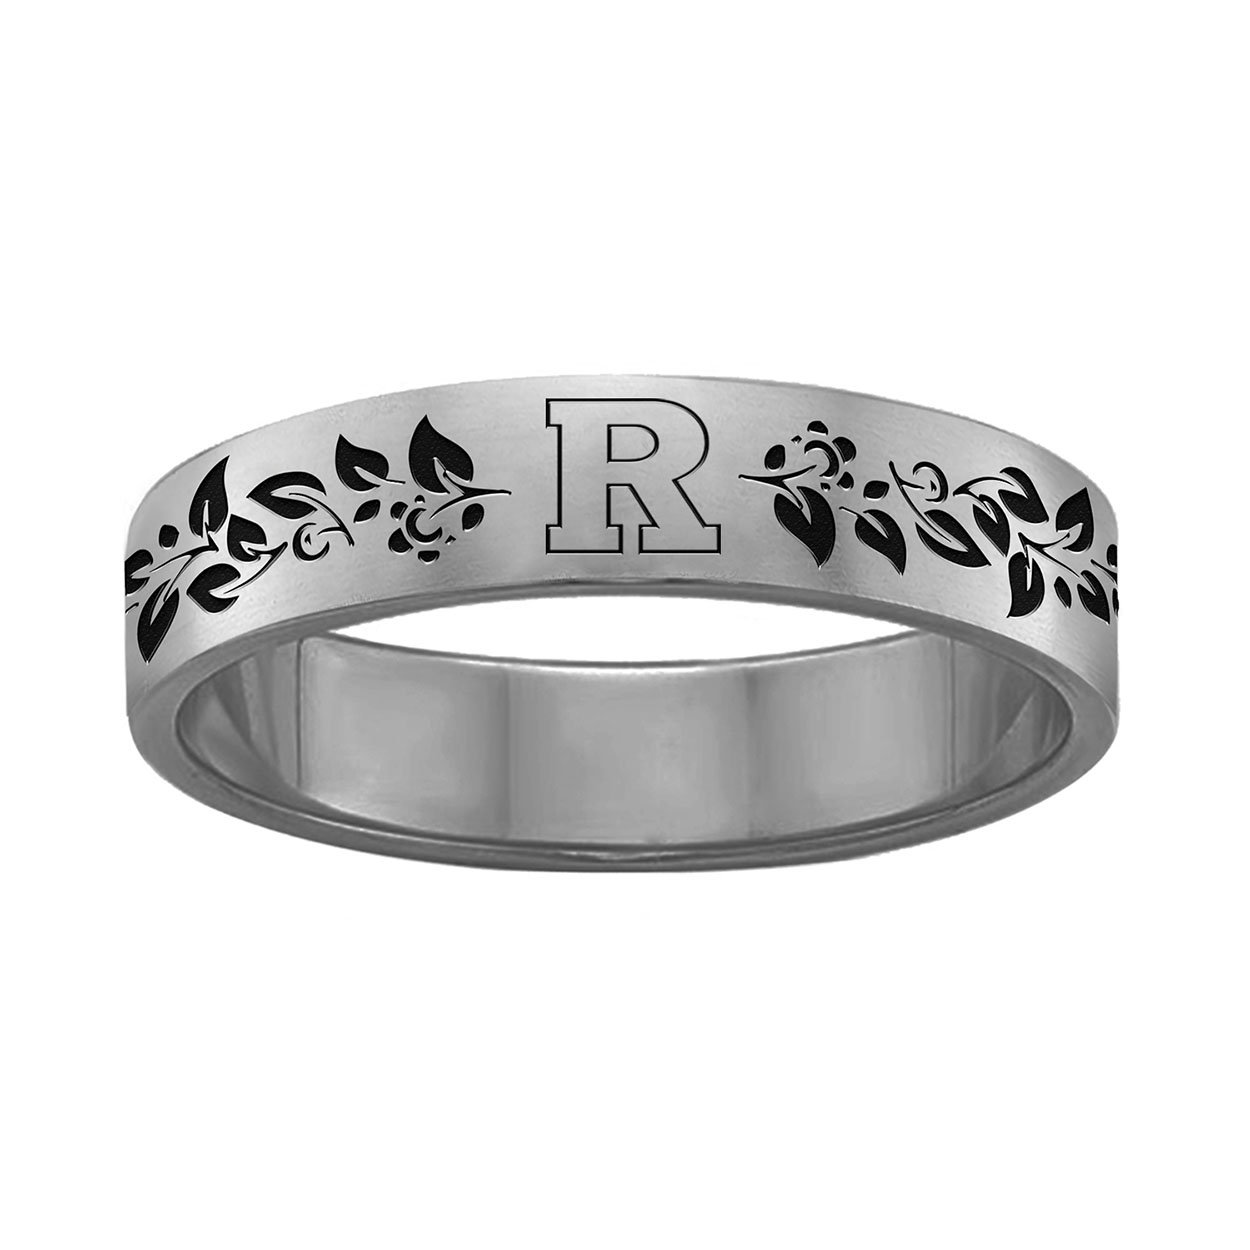 Vine Design Organic Style Rutgers University Scarlet Knights Rings Stainless Steel 6MM Wide Ring Band